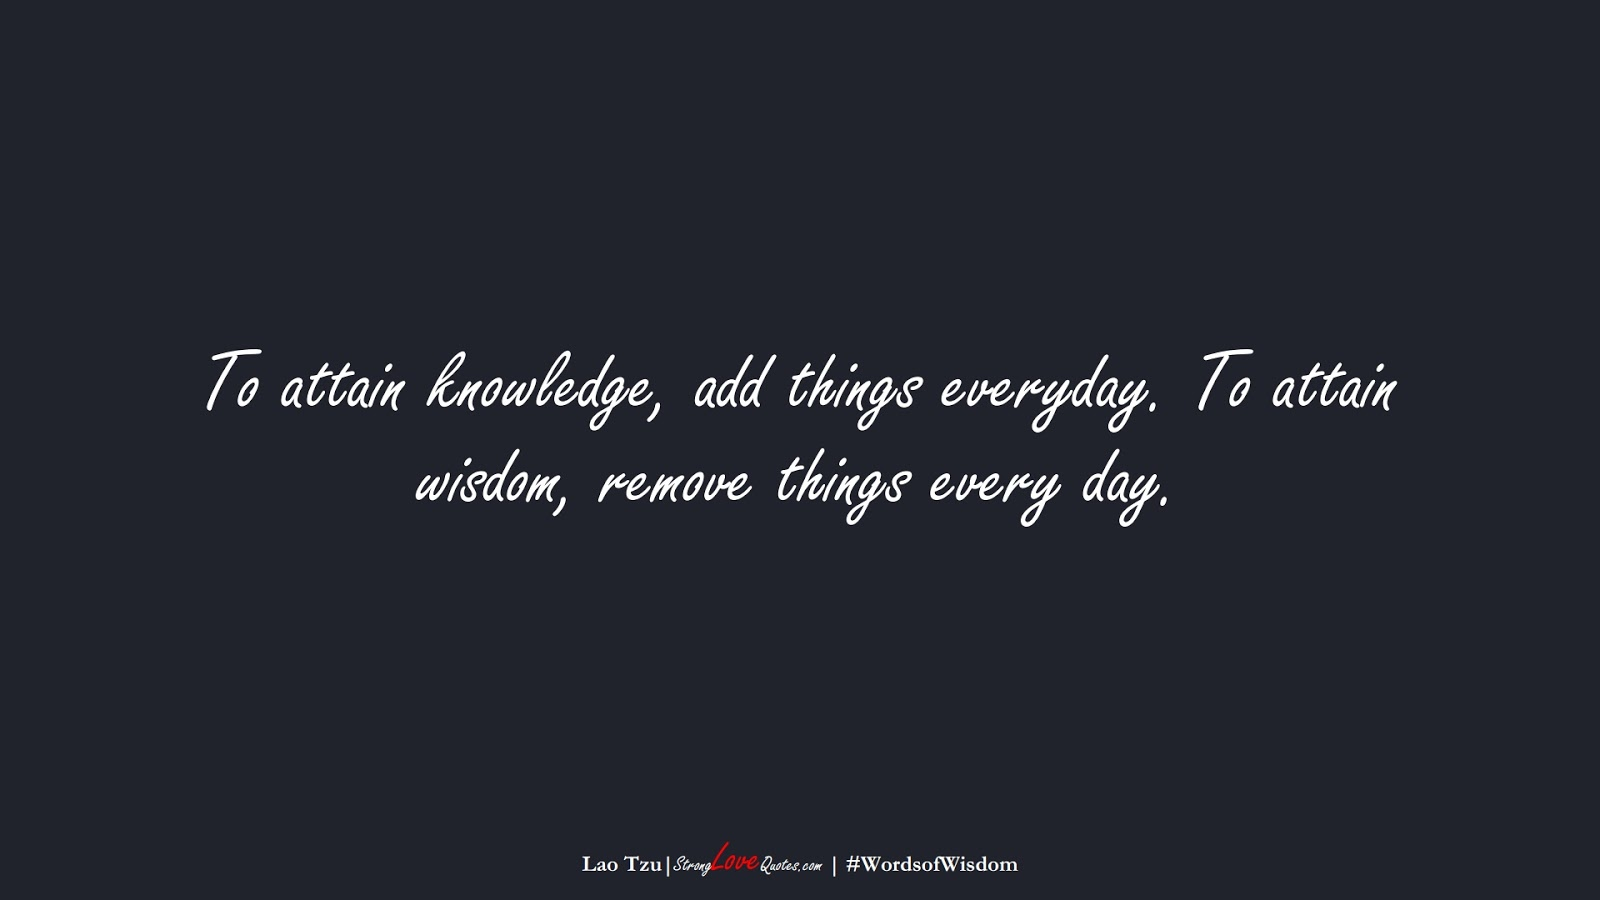 To attain knowledge, add things everyday. To attain wisdom, remove things every day. (Lao Tzu);  #WordsofWisdom